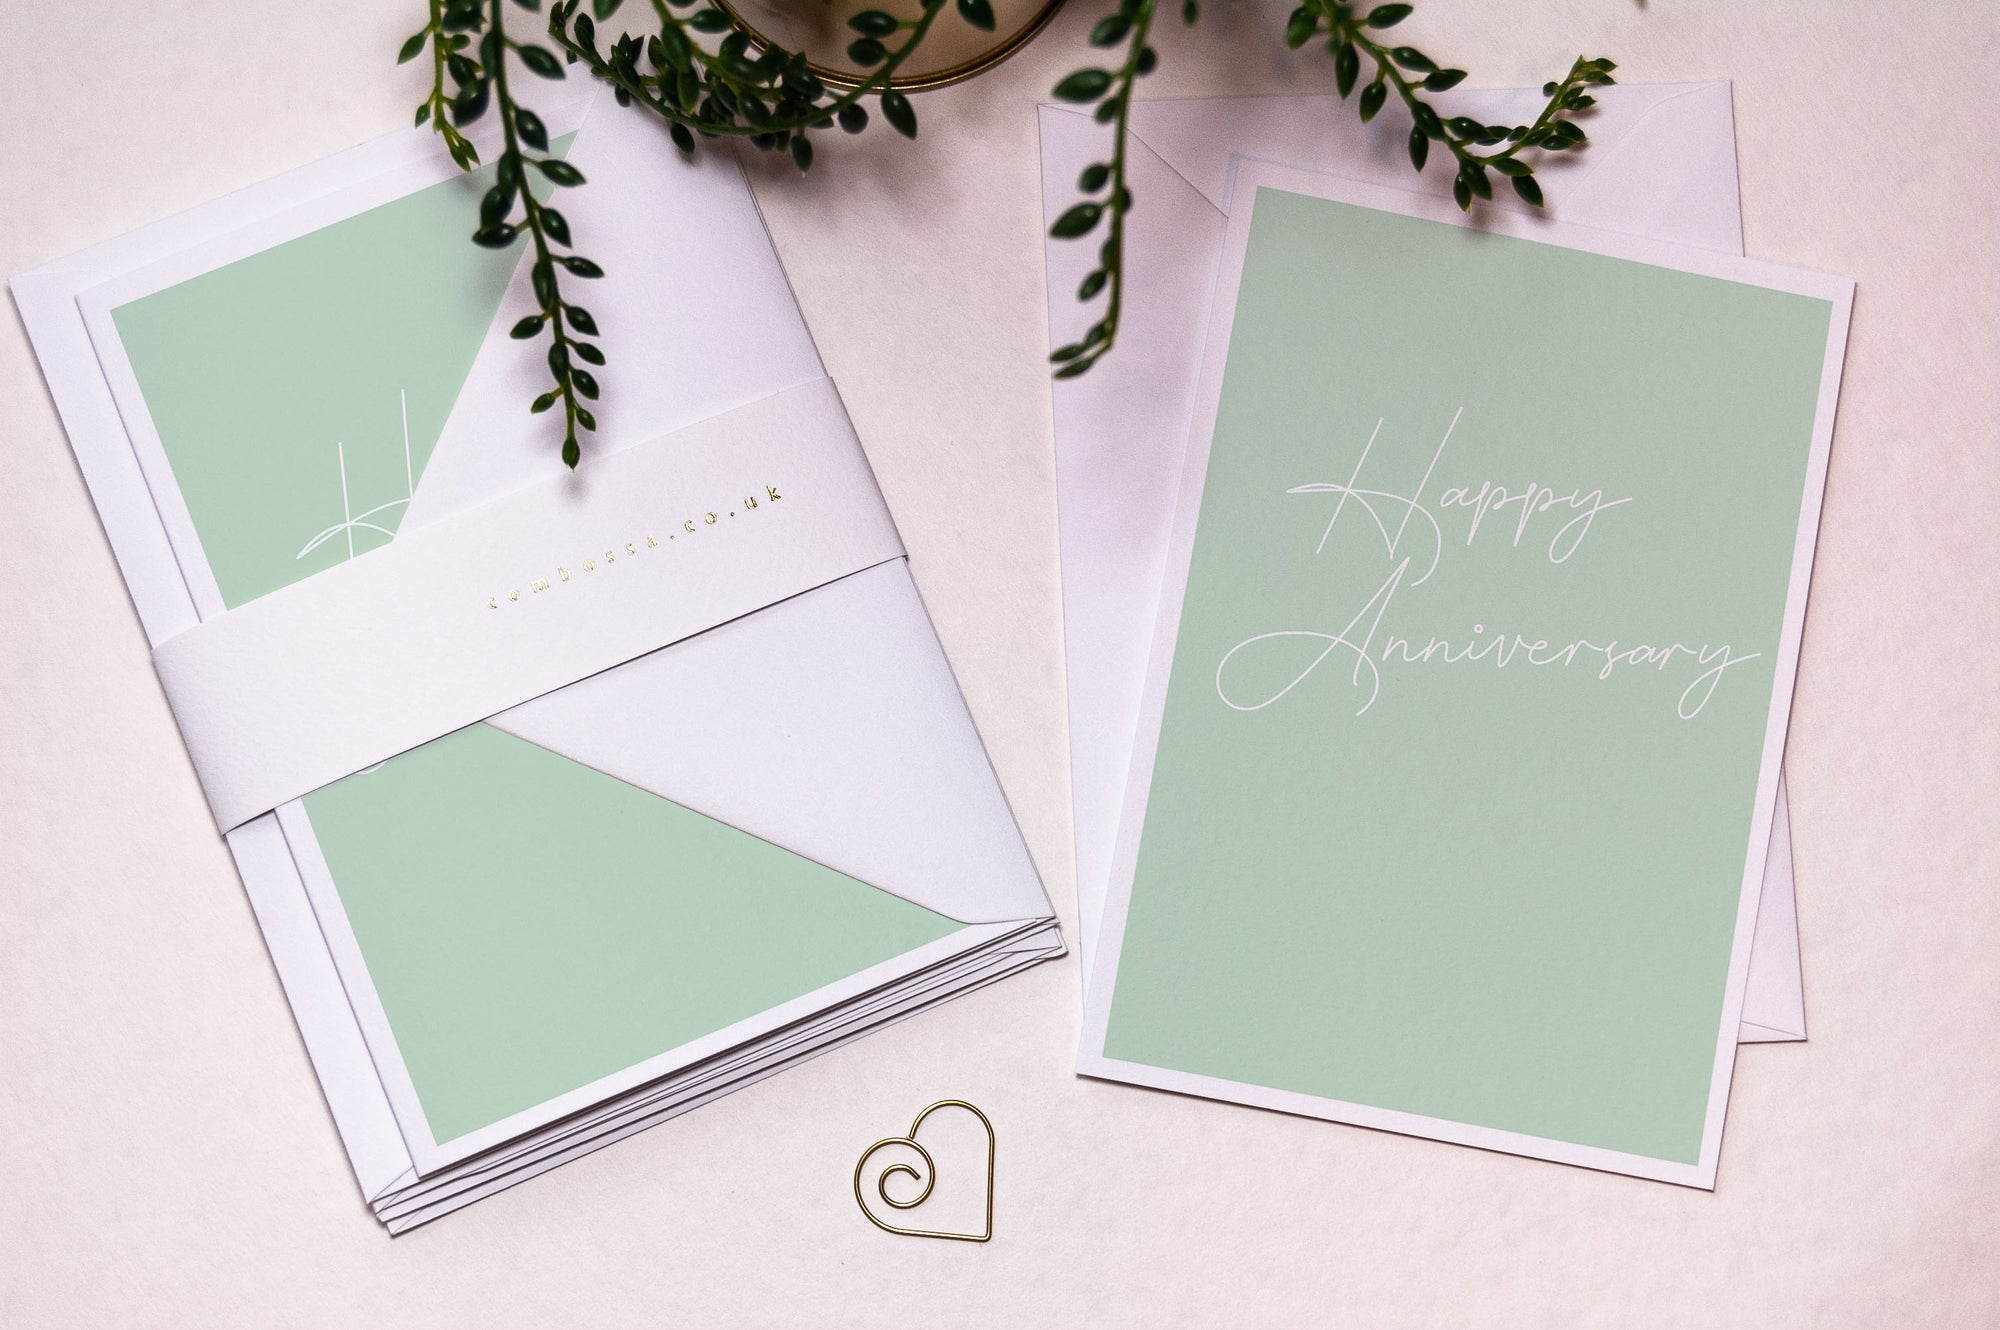 Script Happy Anniversary Card - Green